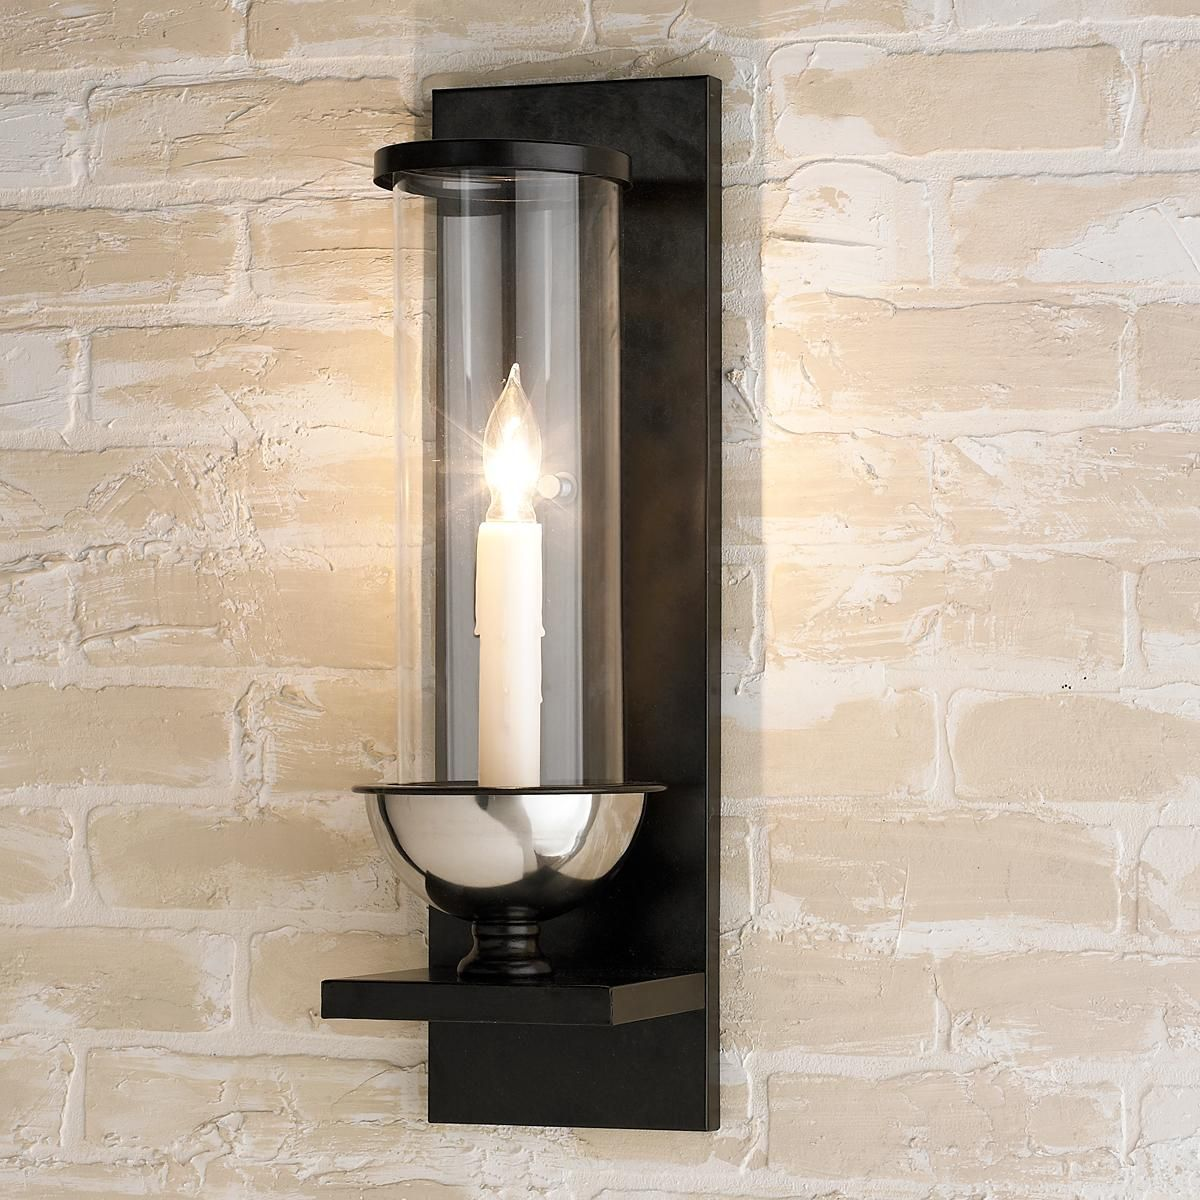 Unique High Quality Lighting Rugs And Accent Furniture Replacement Glass Shades Sconces Glass Wall Sconce